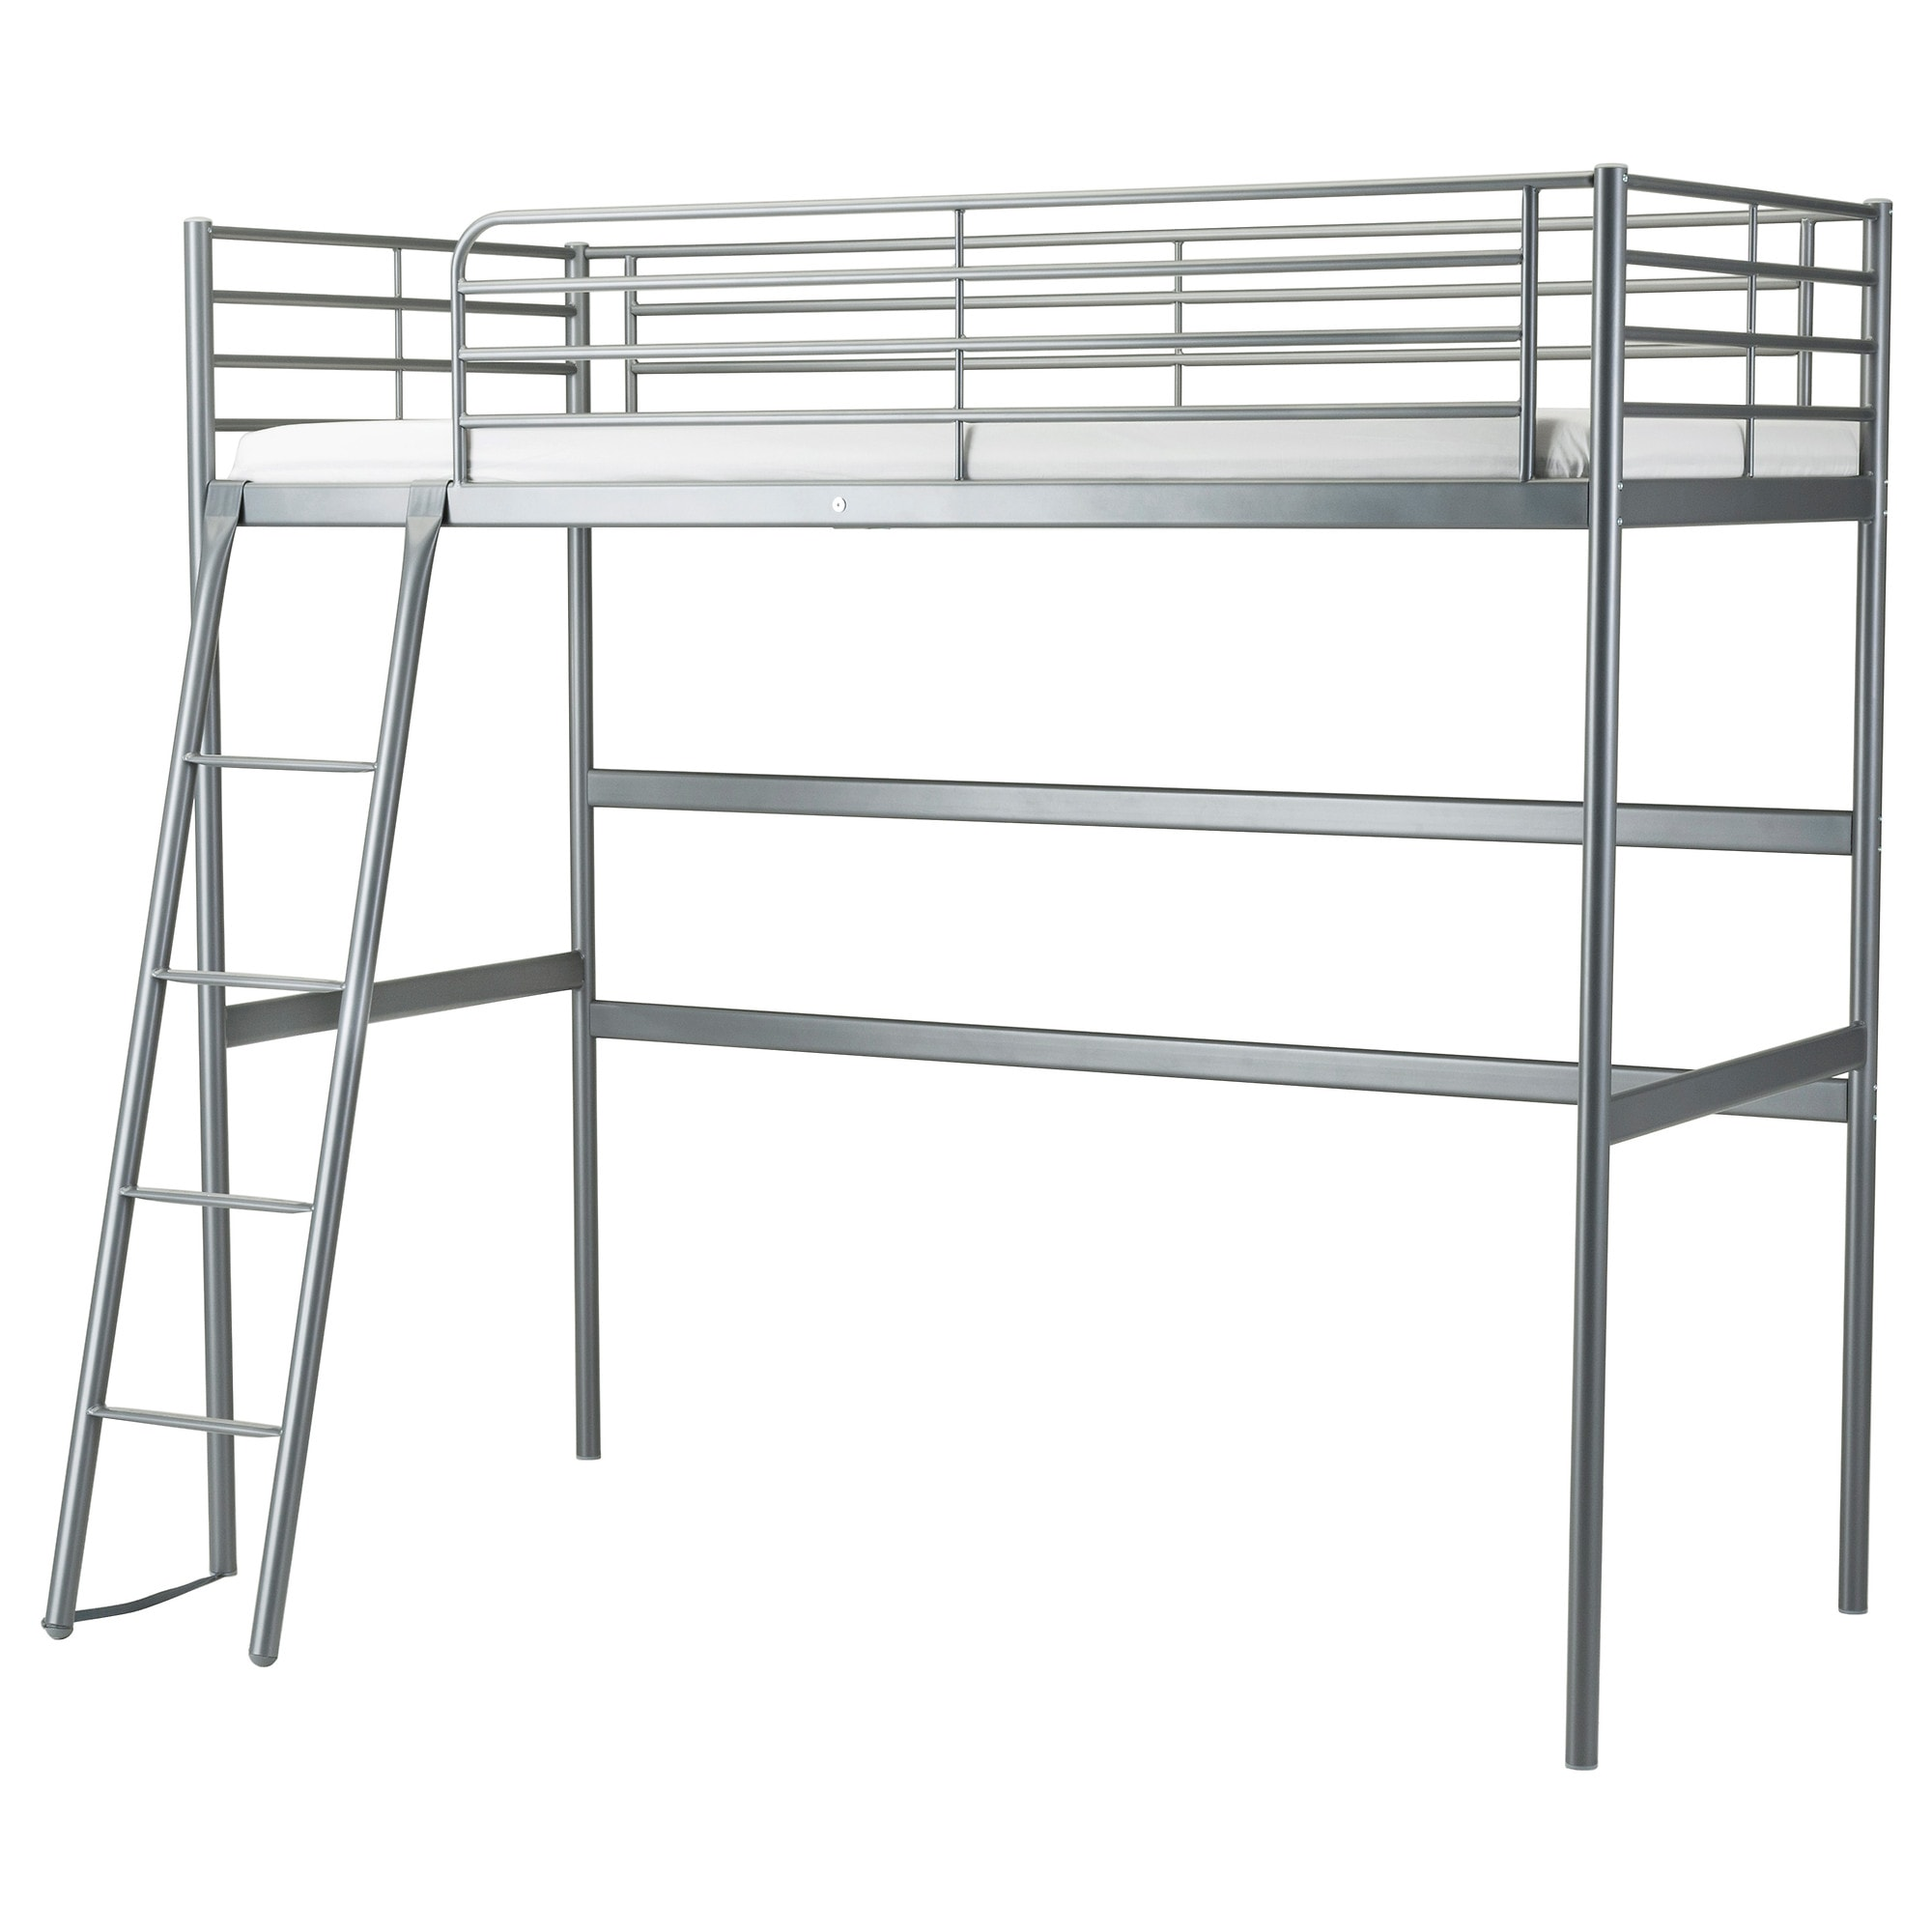 svrta loft bed frame silver color length 78 distance from floor to bed